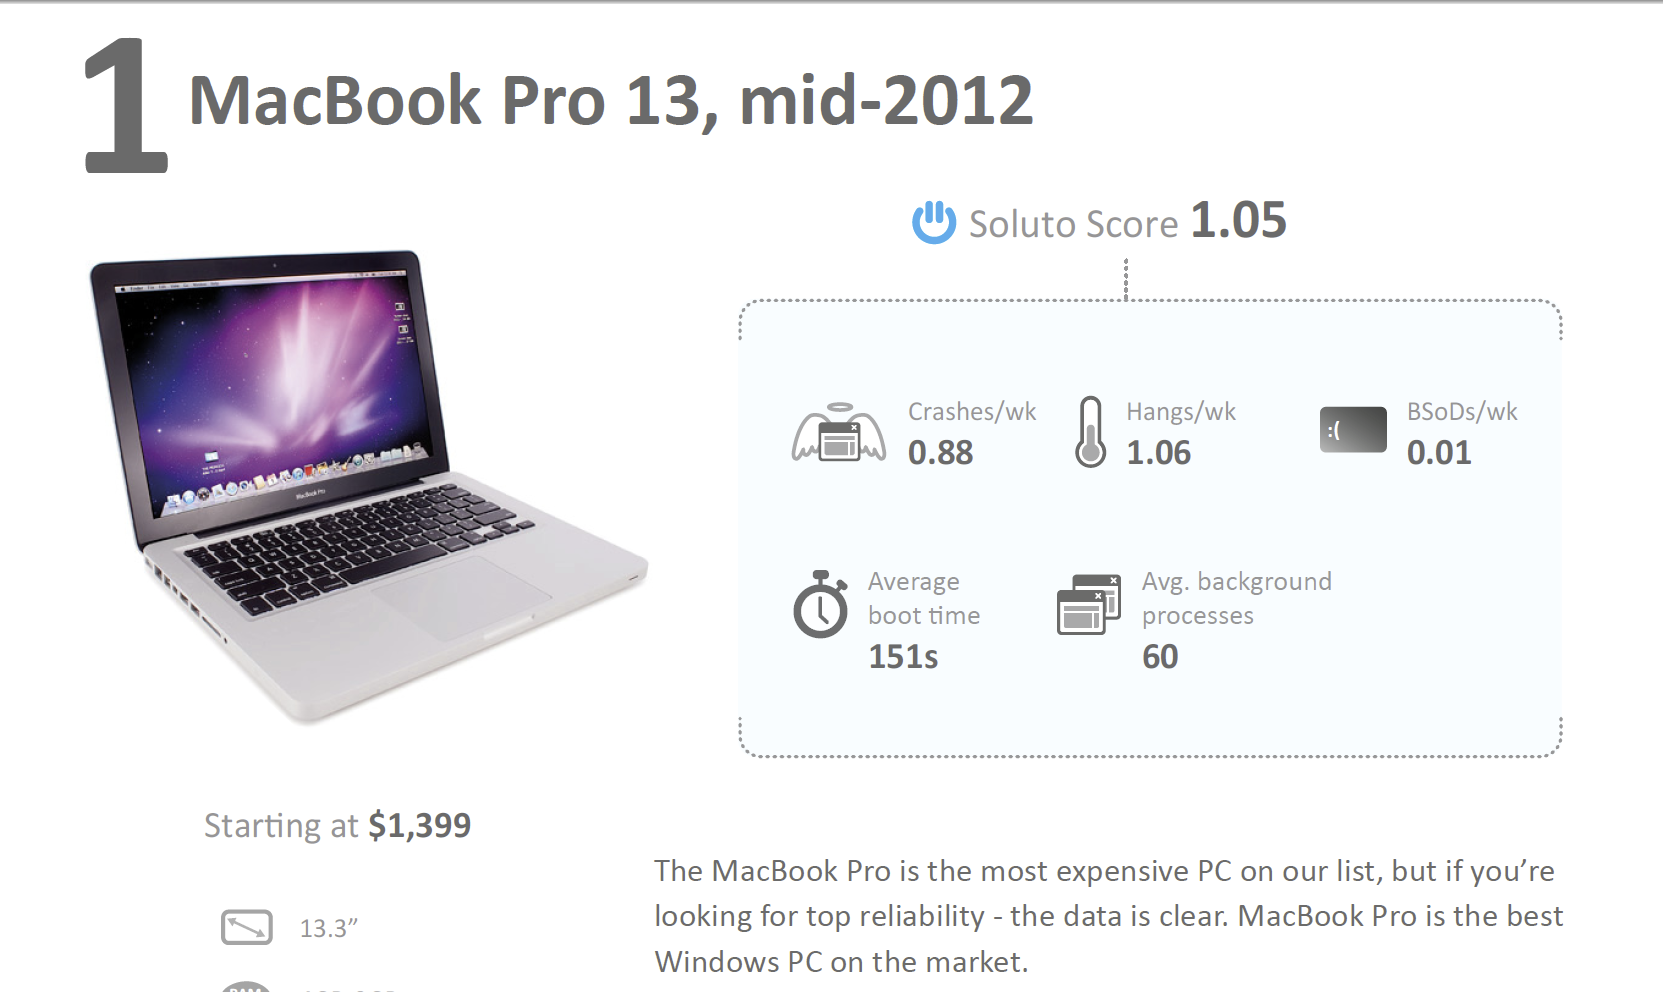 and bsods crowns the mid 2012 macbook pro 13 as the most reliable